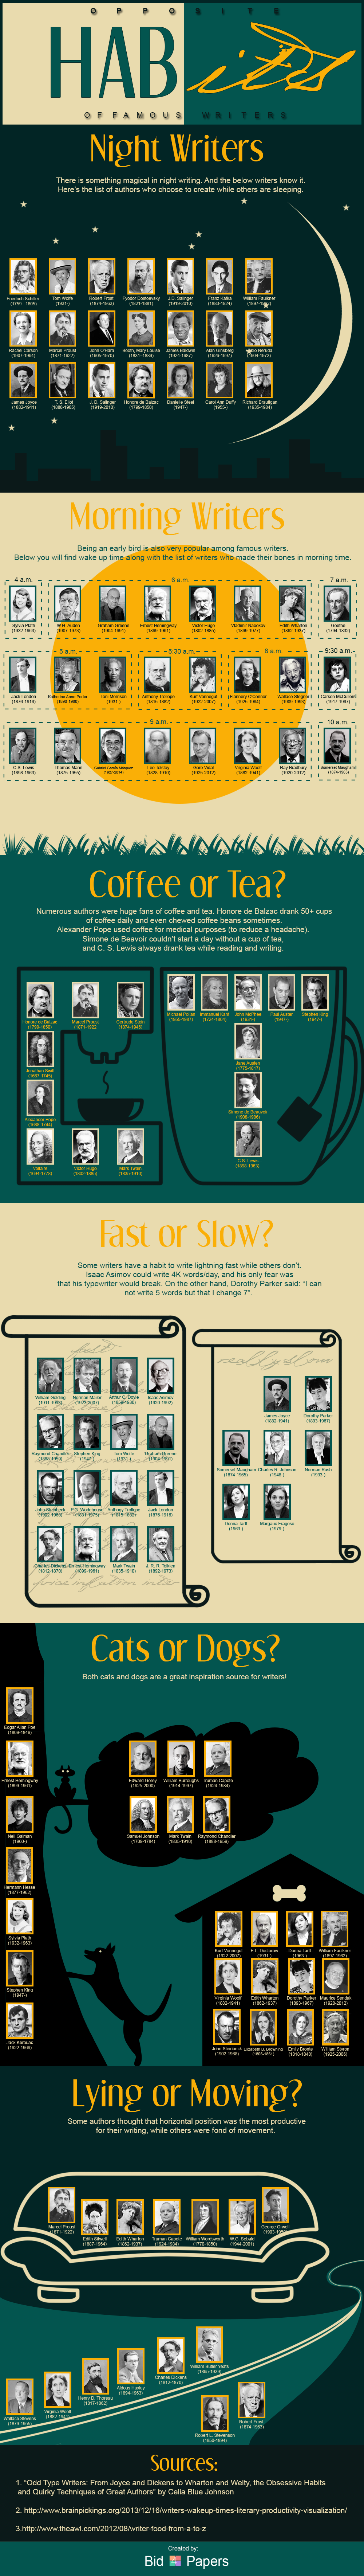 Opposite Habits of Famous Writers by Bid4Papers